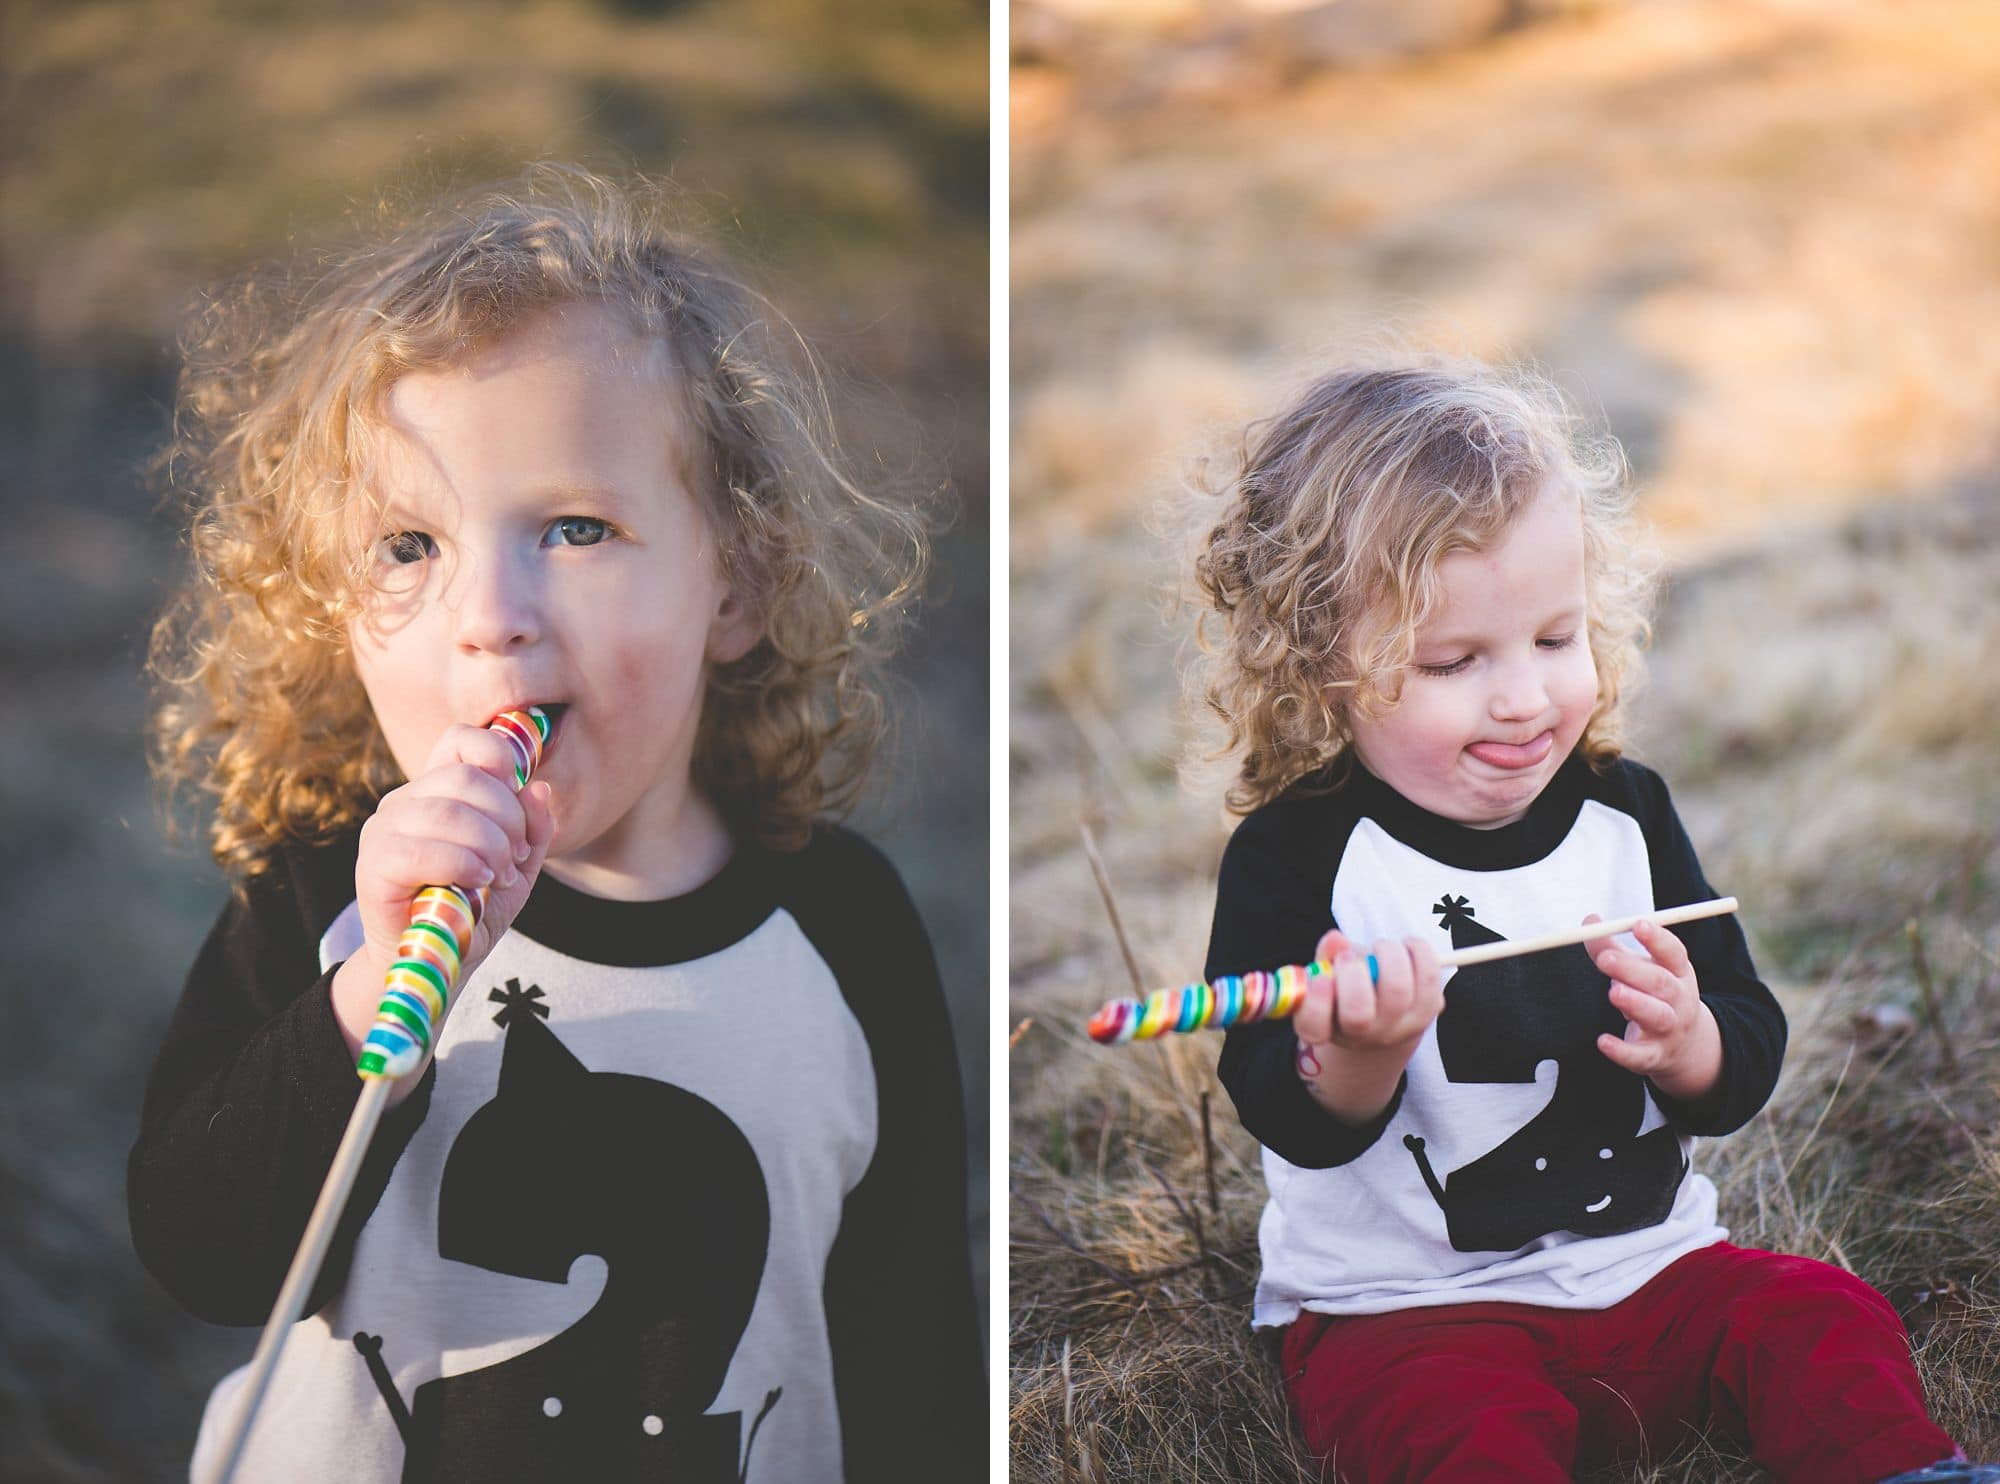 Two year old boy eats candy in a grassy meadow